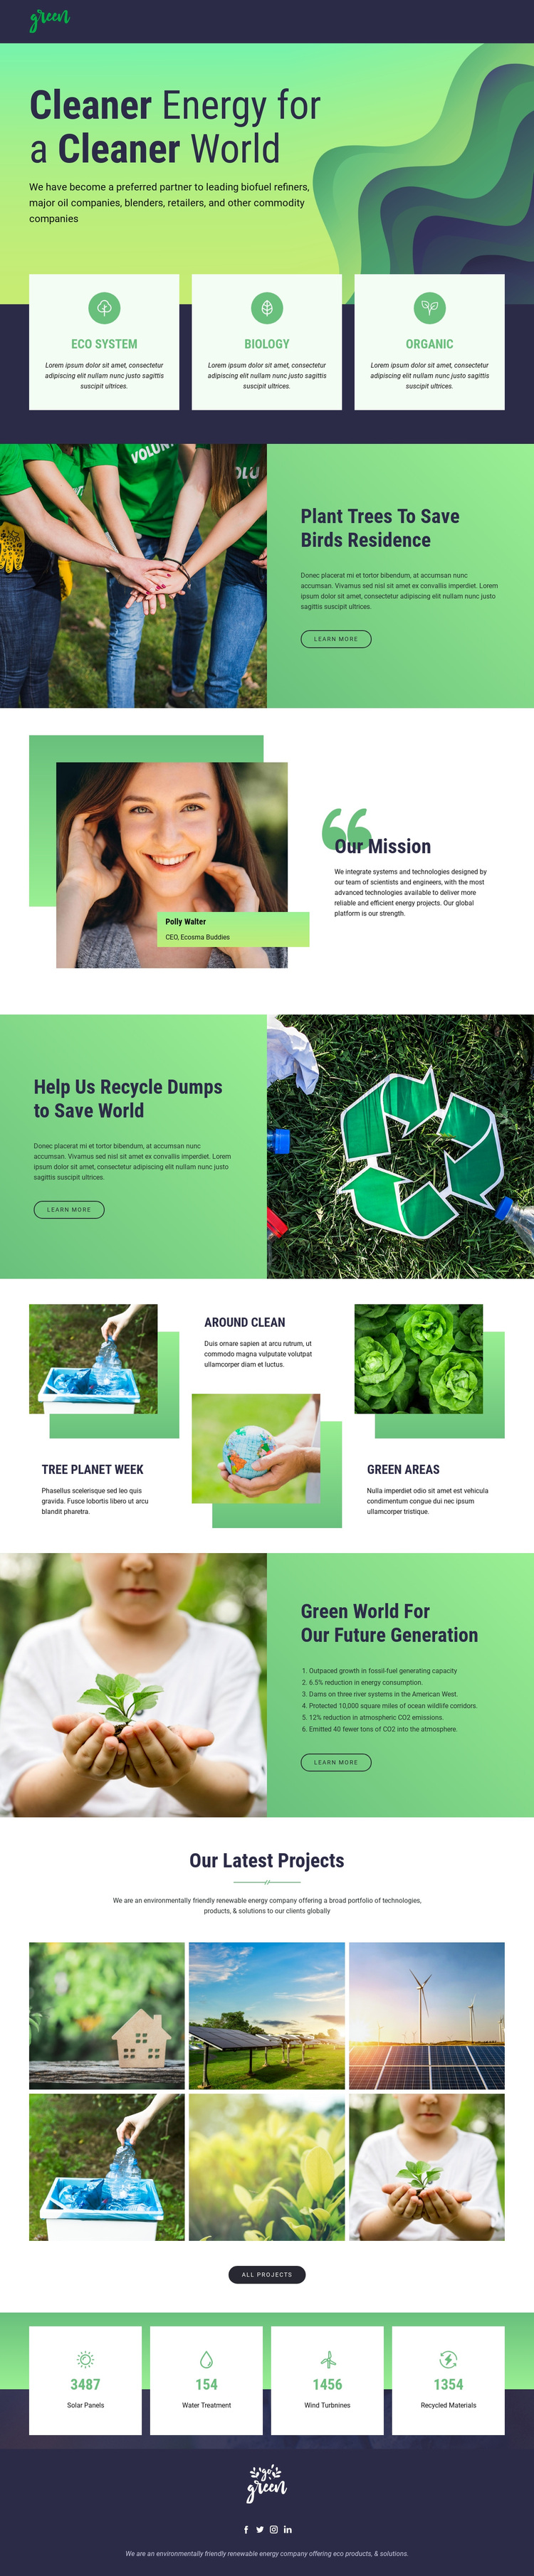 Clean energy to save nature Joomla Page Builder